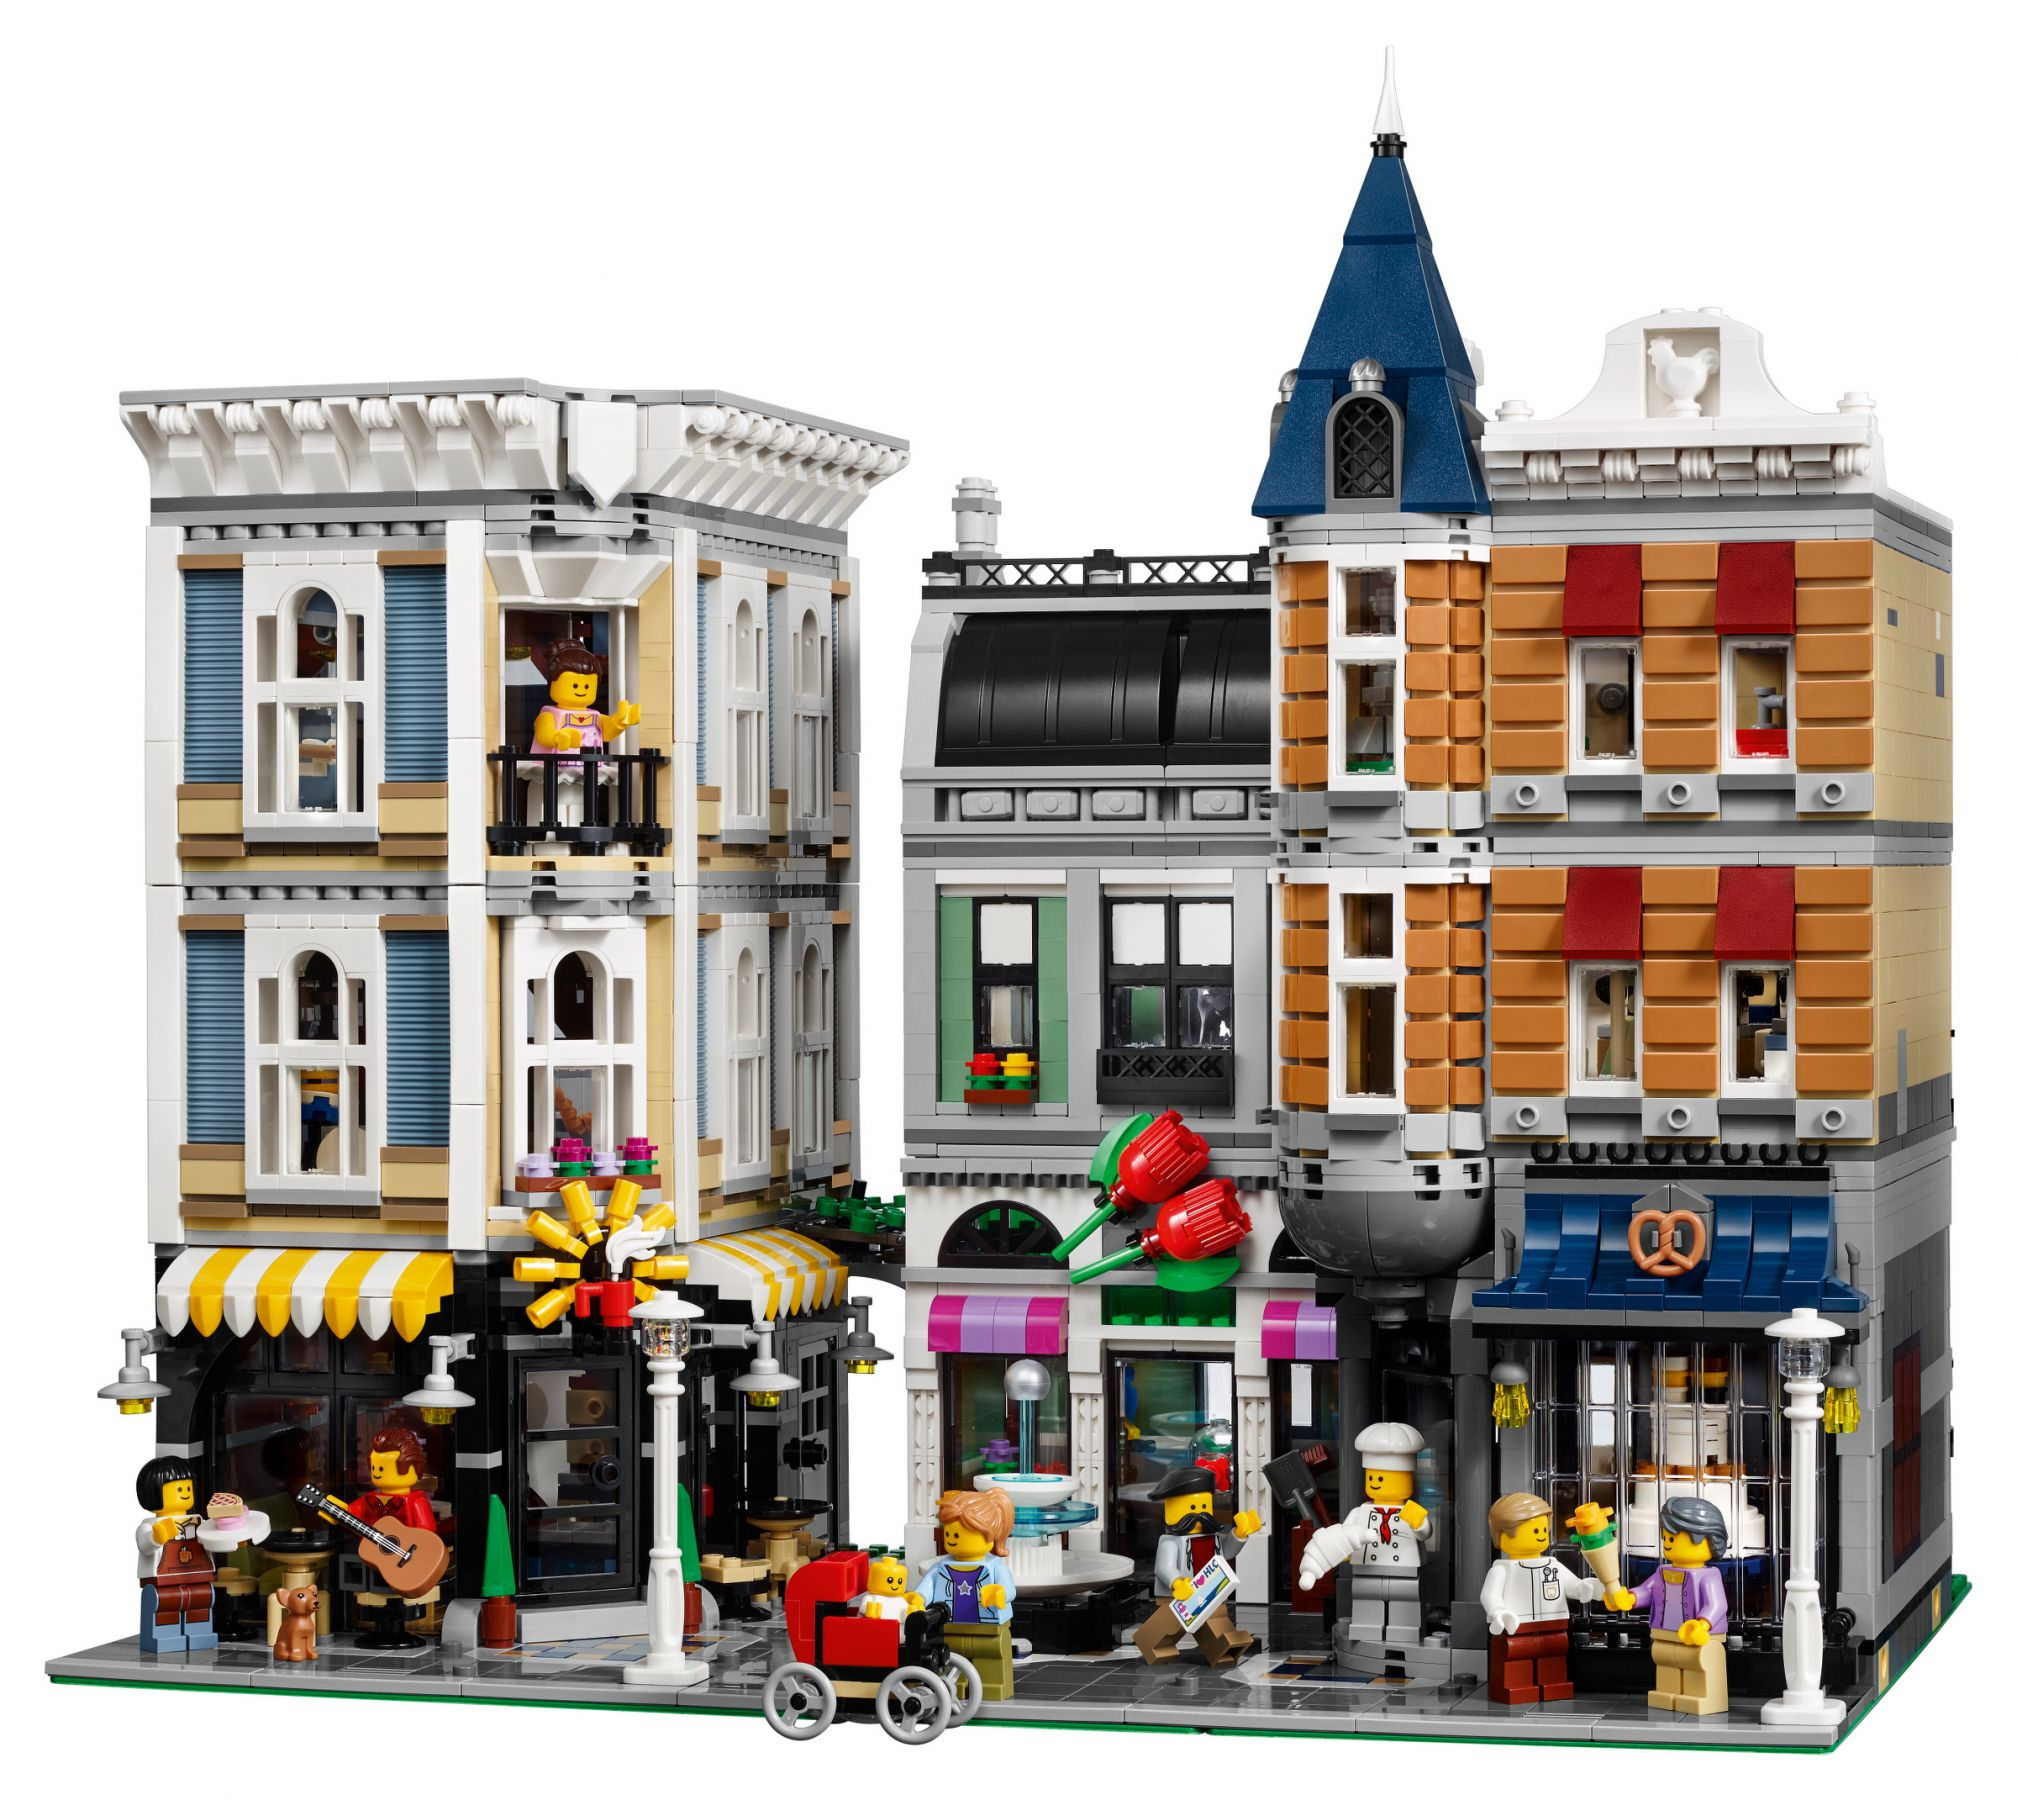 LEGO Advanced Models 10255 Stadtleben (Assembly Square) LEGO_10255_alt2.jpg